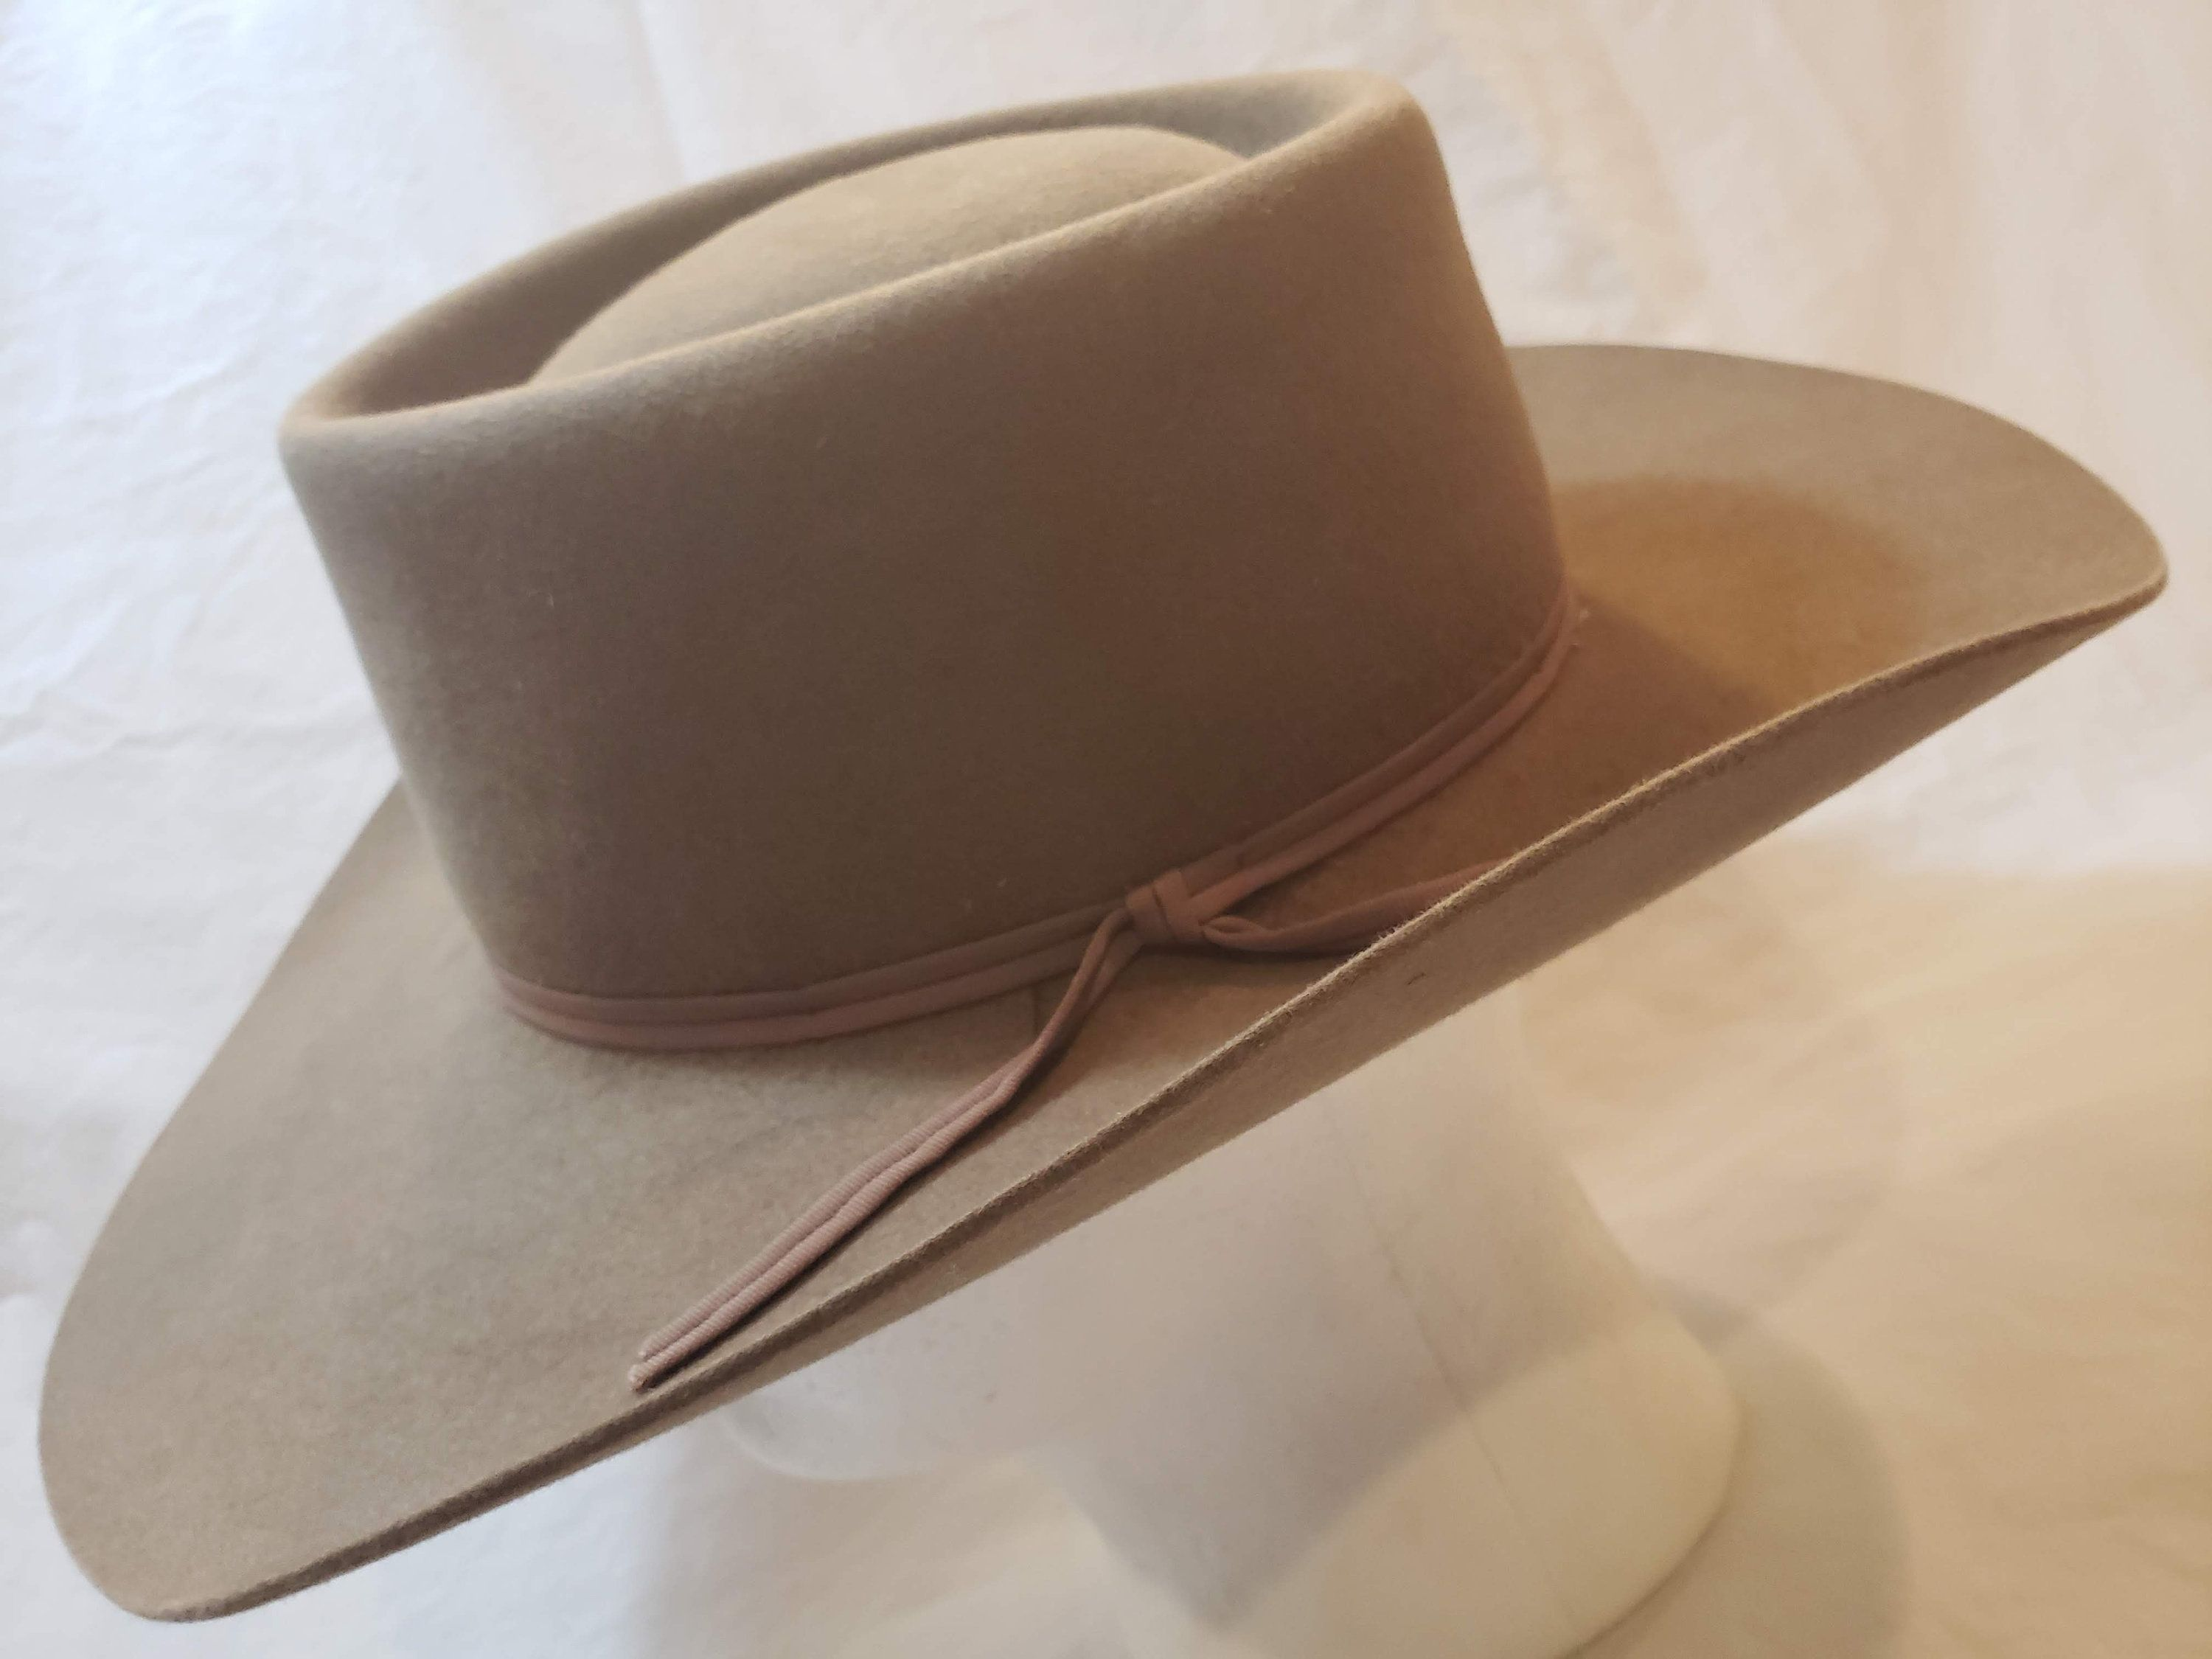 Vintage Beaver Hats 10x Quality Taupe Brown Fur Felt Western Hat Size 7 1 8 Beaver Hat Western Hats Hat Sizes